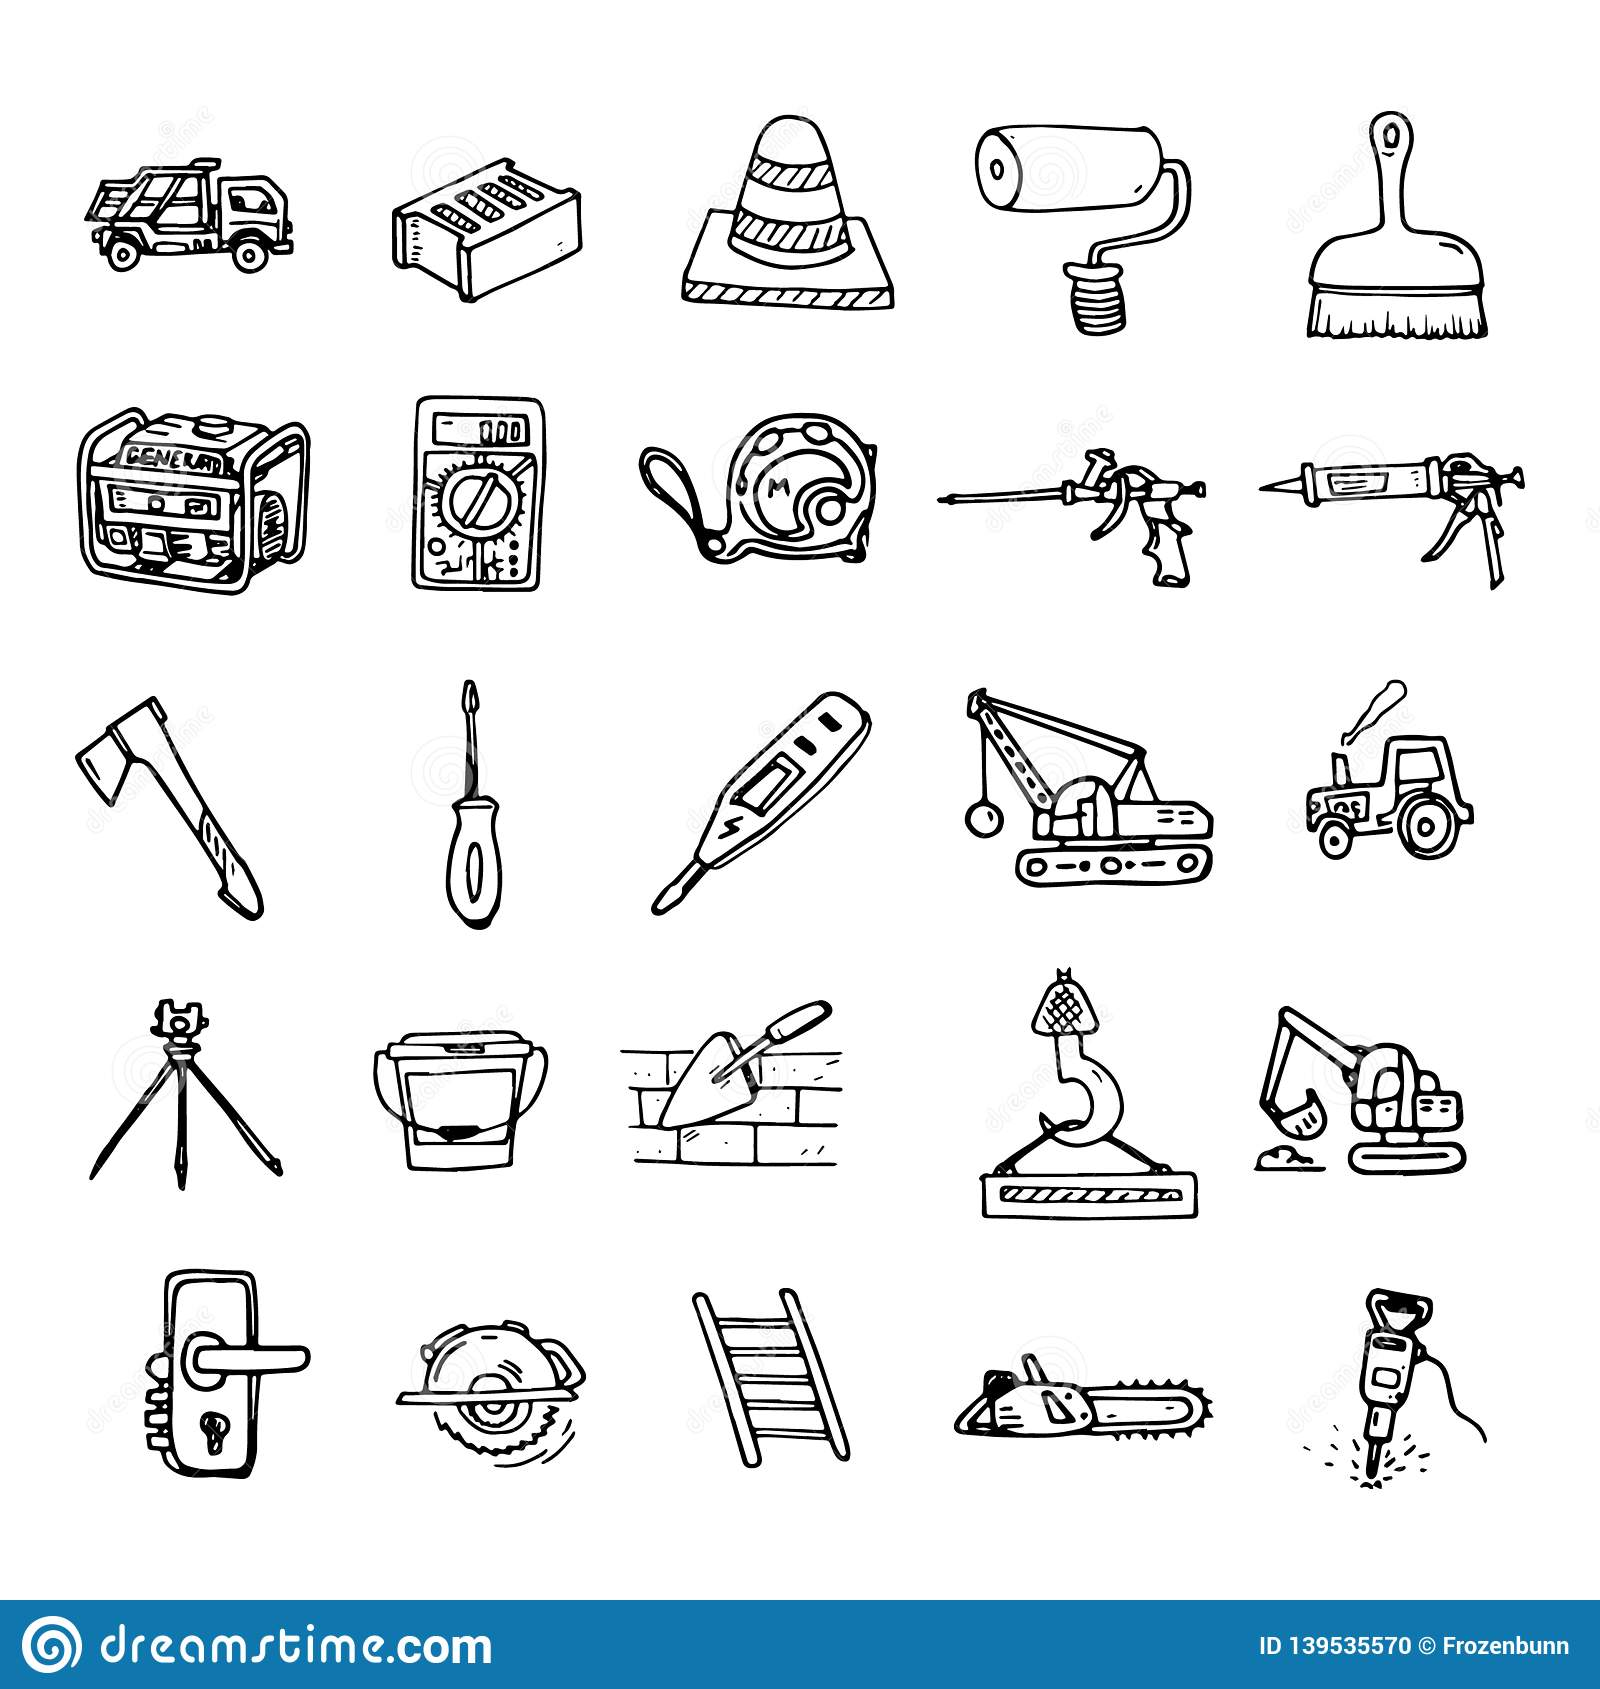 Handdrawn Construction Tools And Equipment Set Doodle Icons